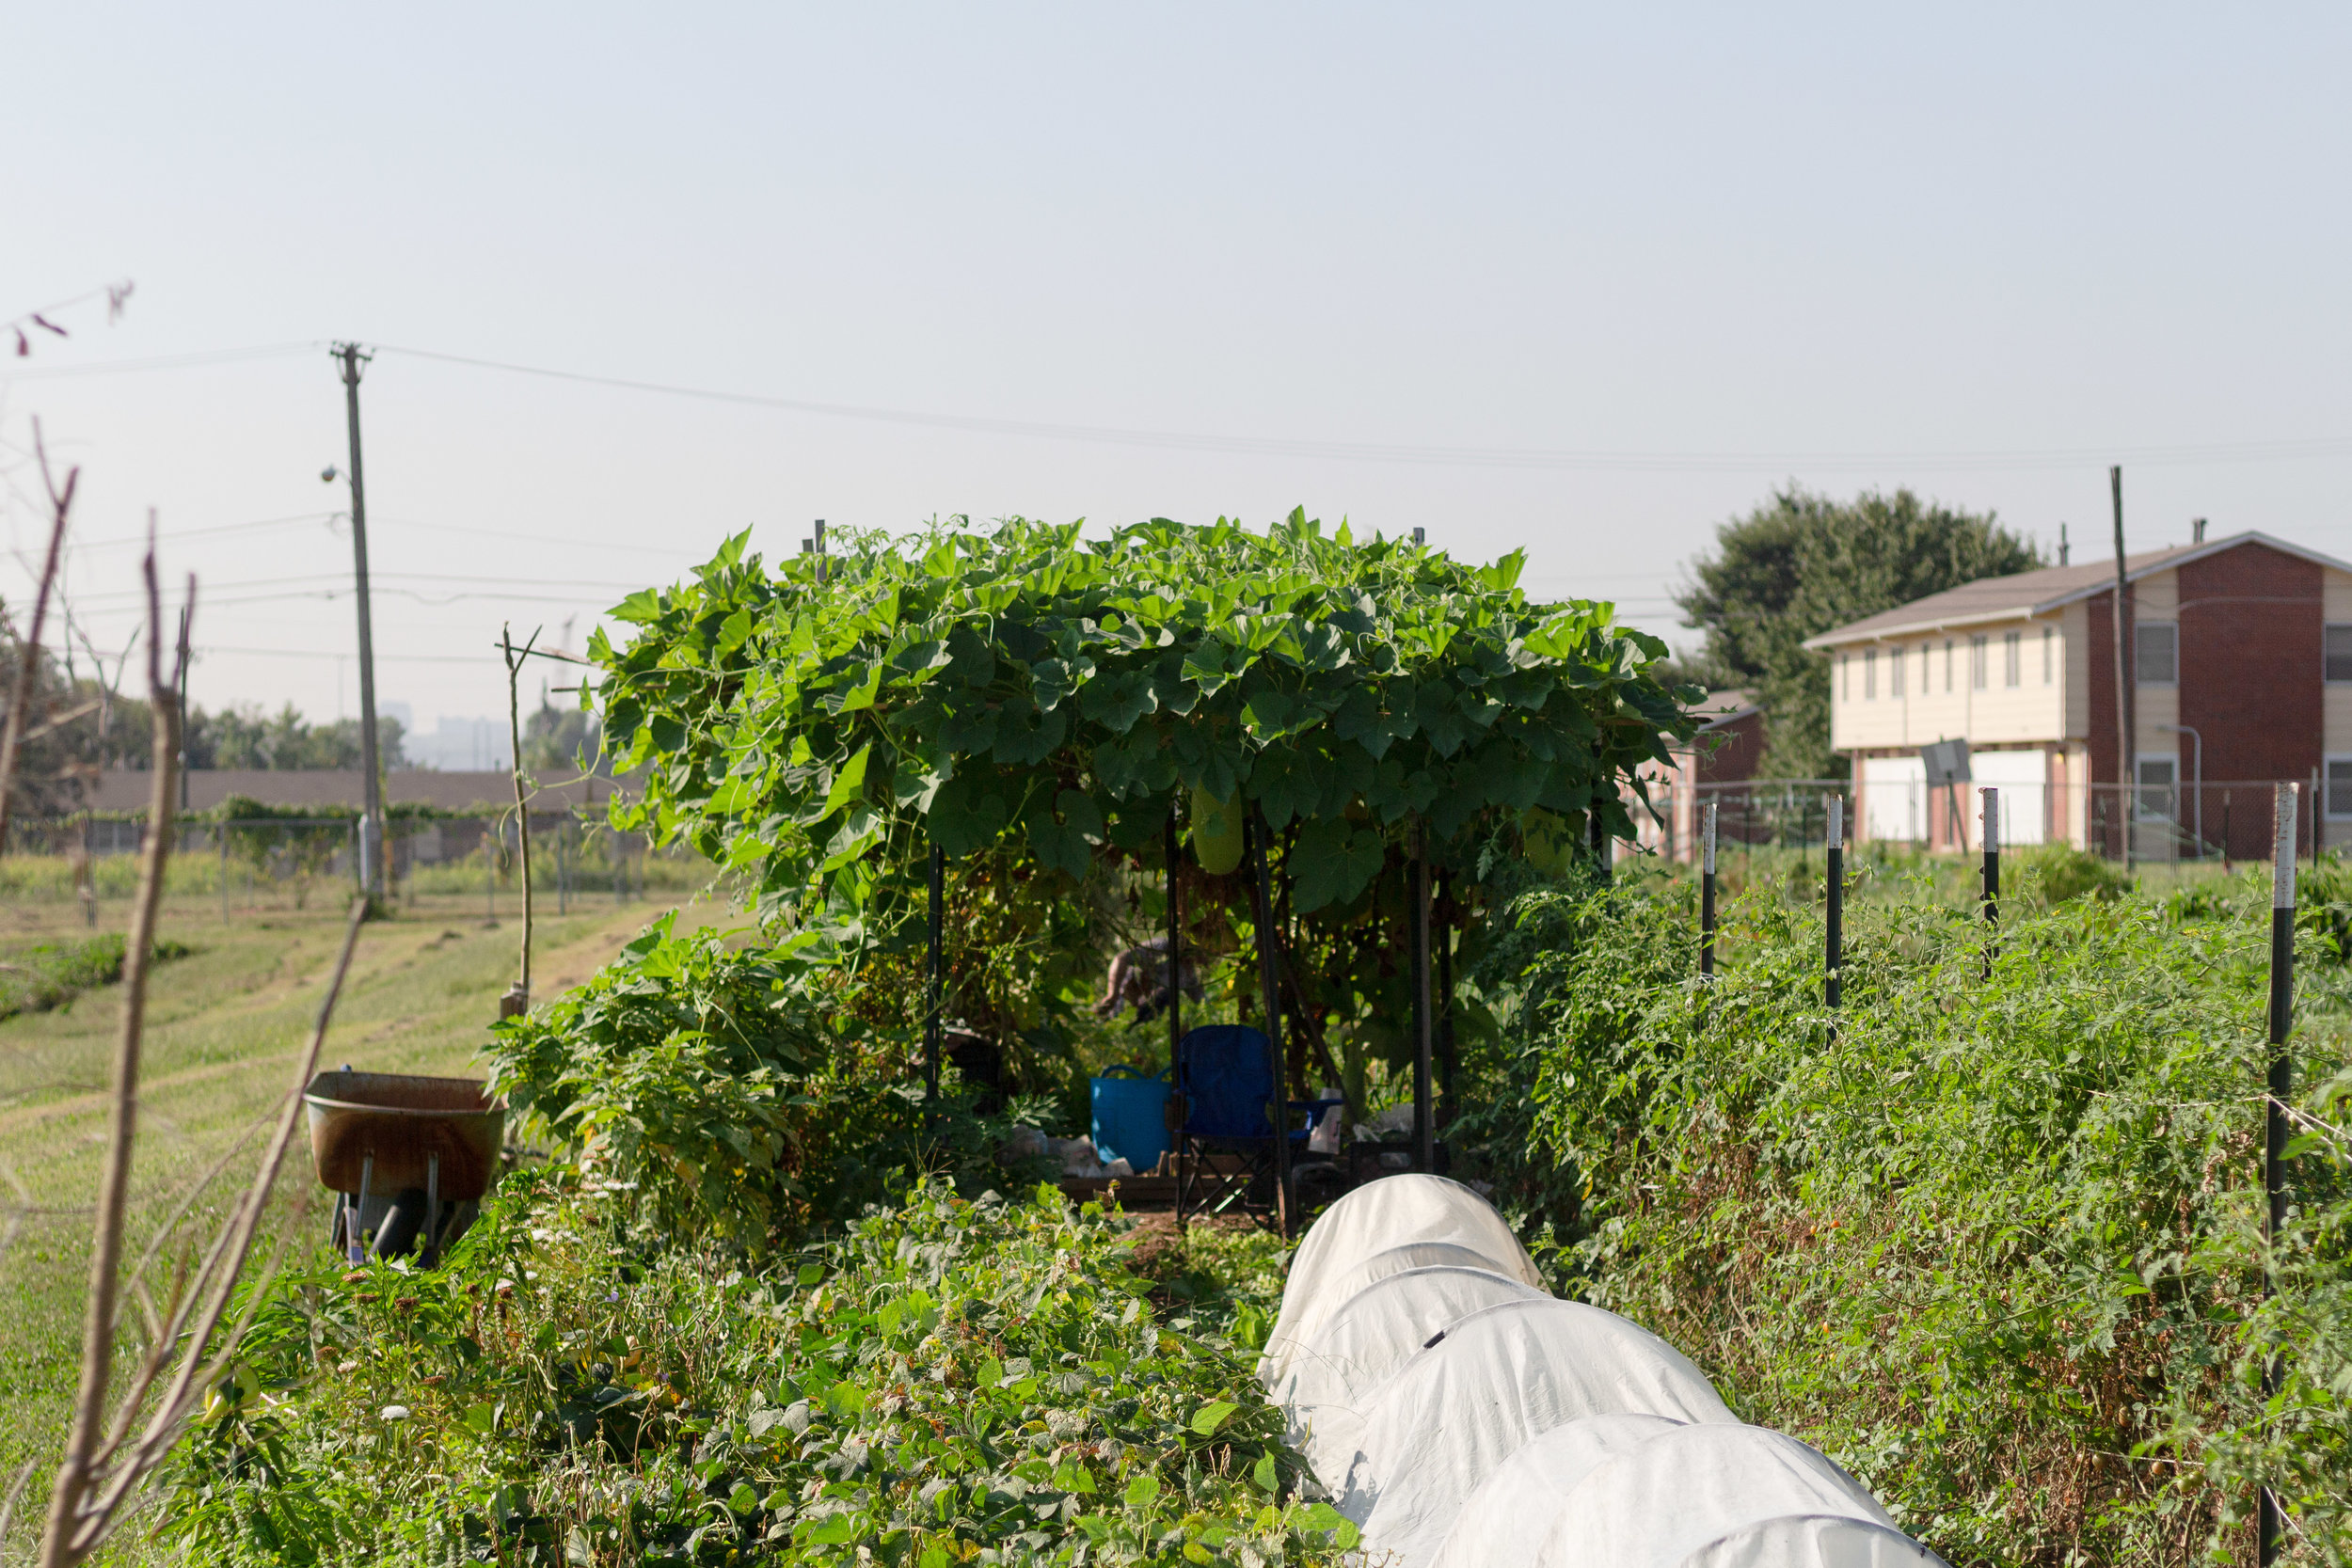 Shade structure for bottle gourds to grow on, constructed by New Roots fourth year farmer, Maria